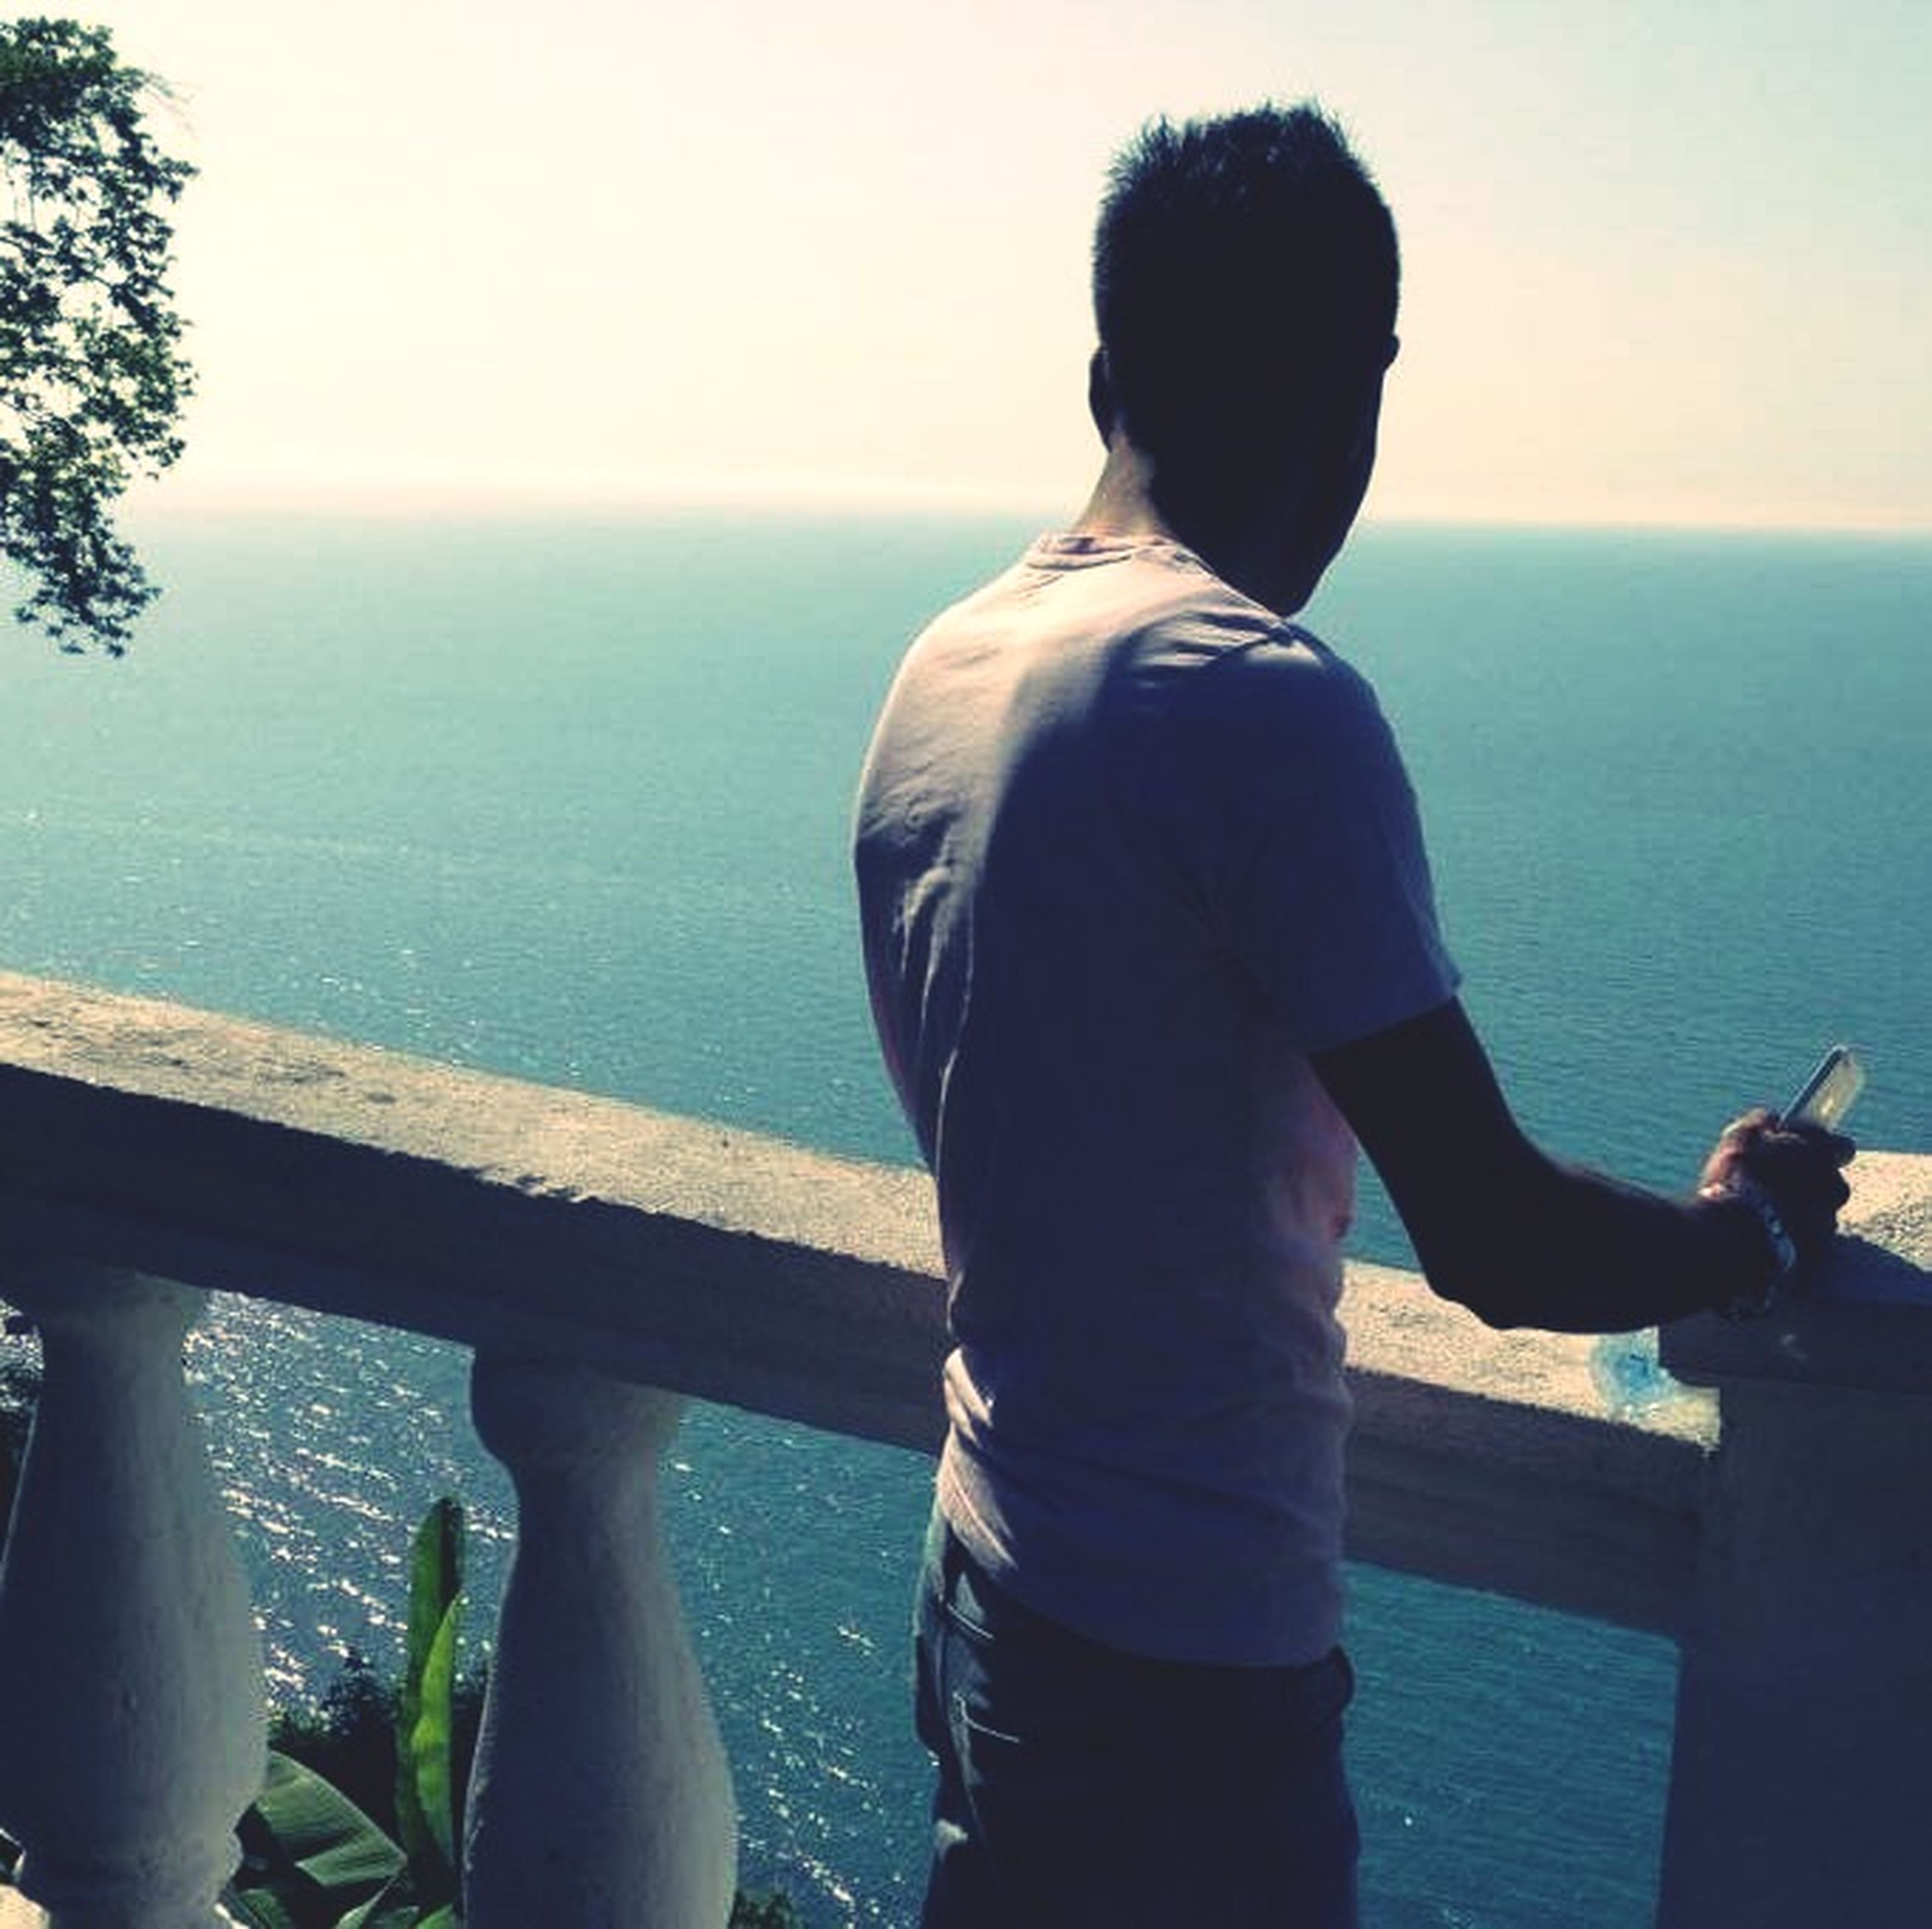 sea, horizon over water, rear view, water, lifestyles, leisure activity, railing, looking at view, standing, sky, clear sky, men, person, scenics, tranquil scene, tranquility, casual clothing, beauty in nature